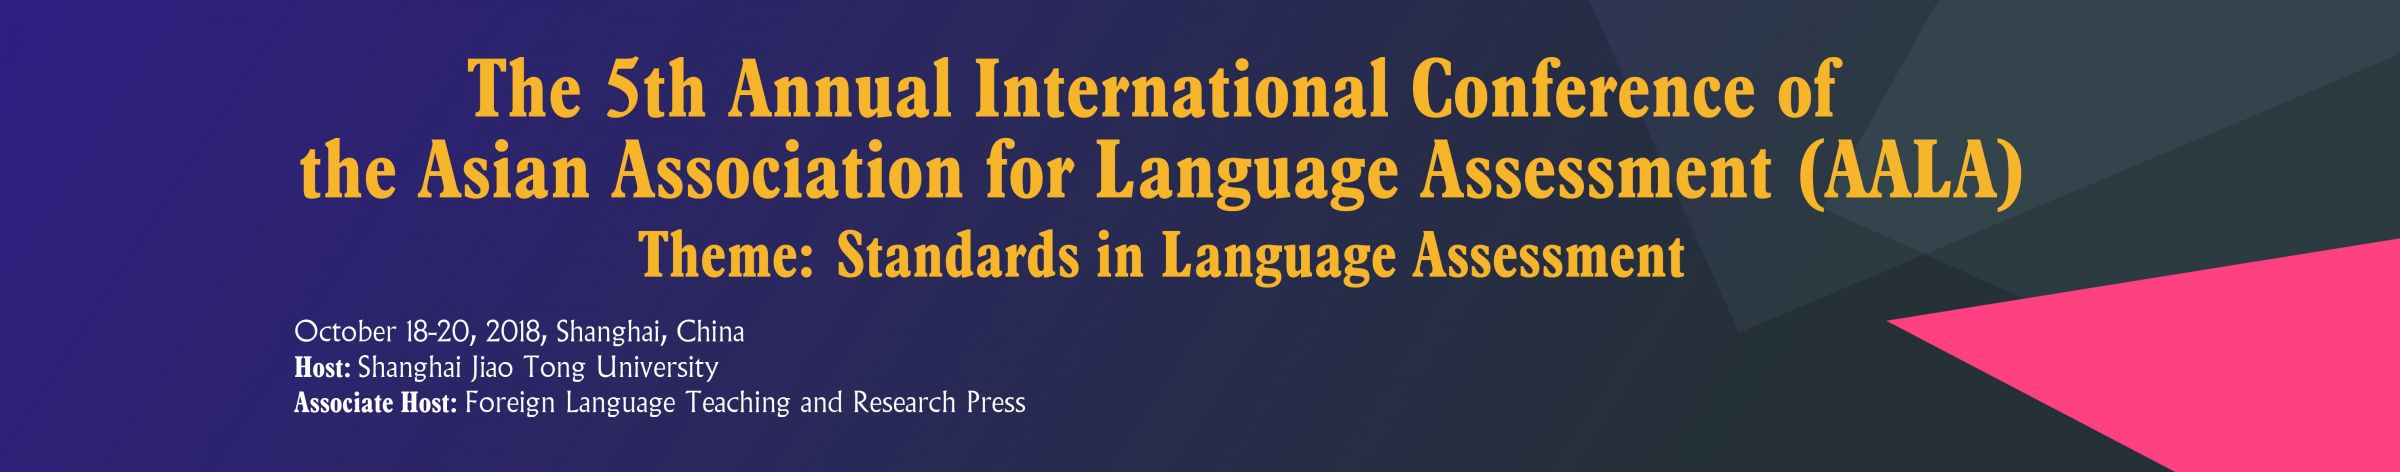 The 5th Annual International Conference of the Asian Association for Language Assessment (AALA)